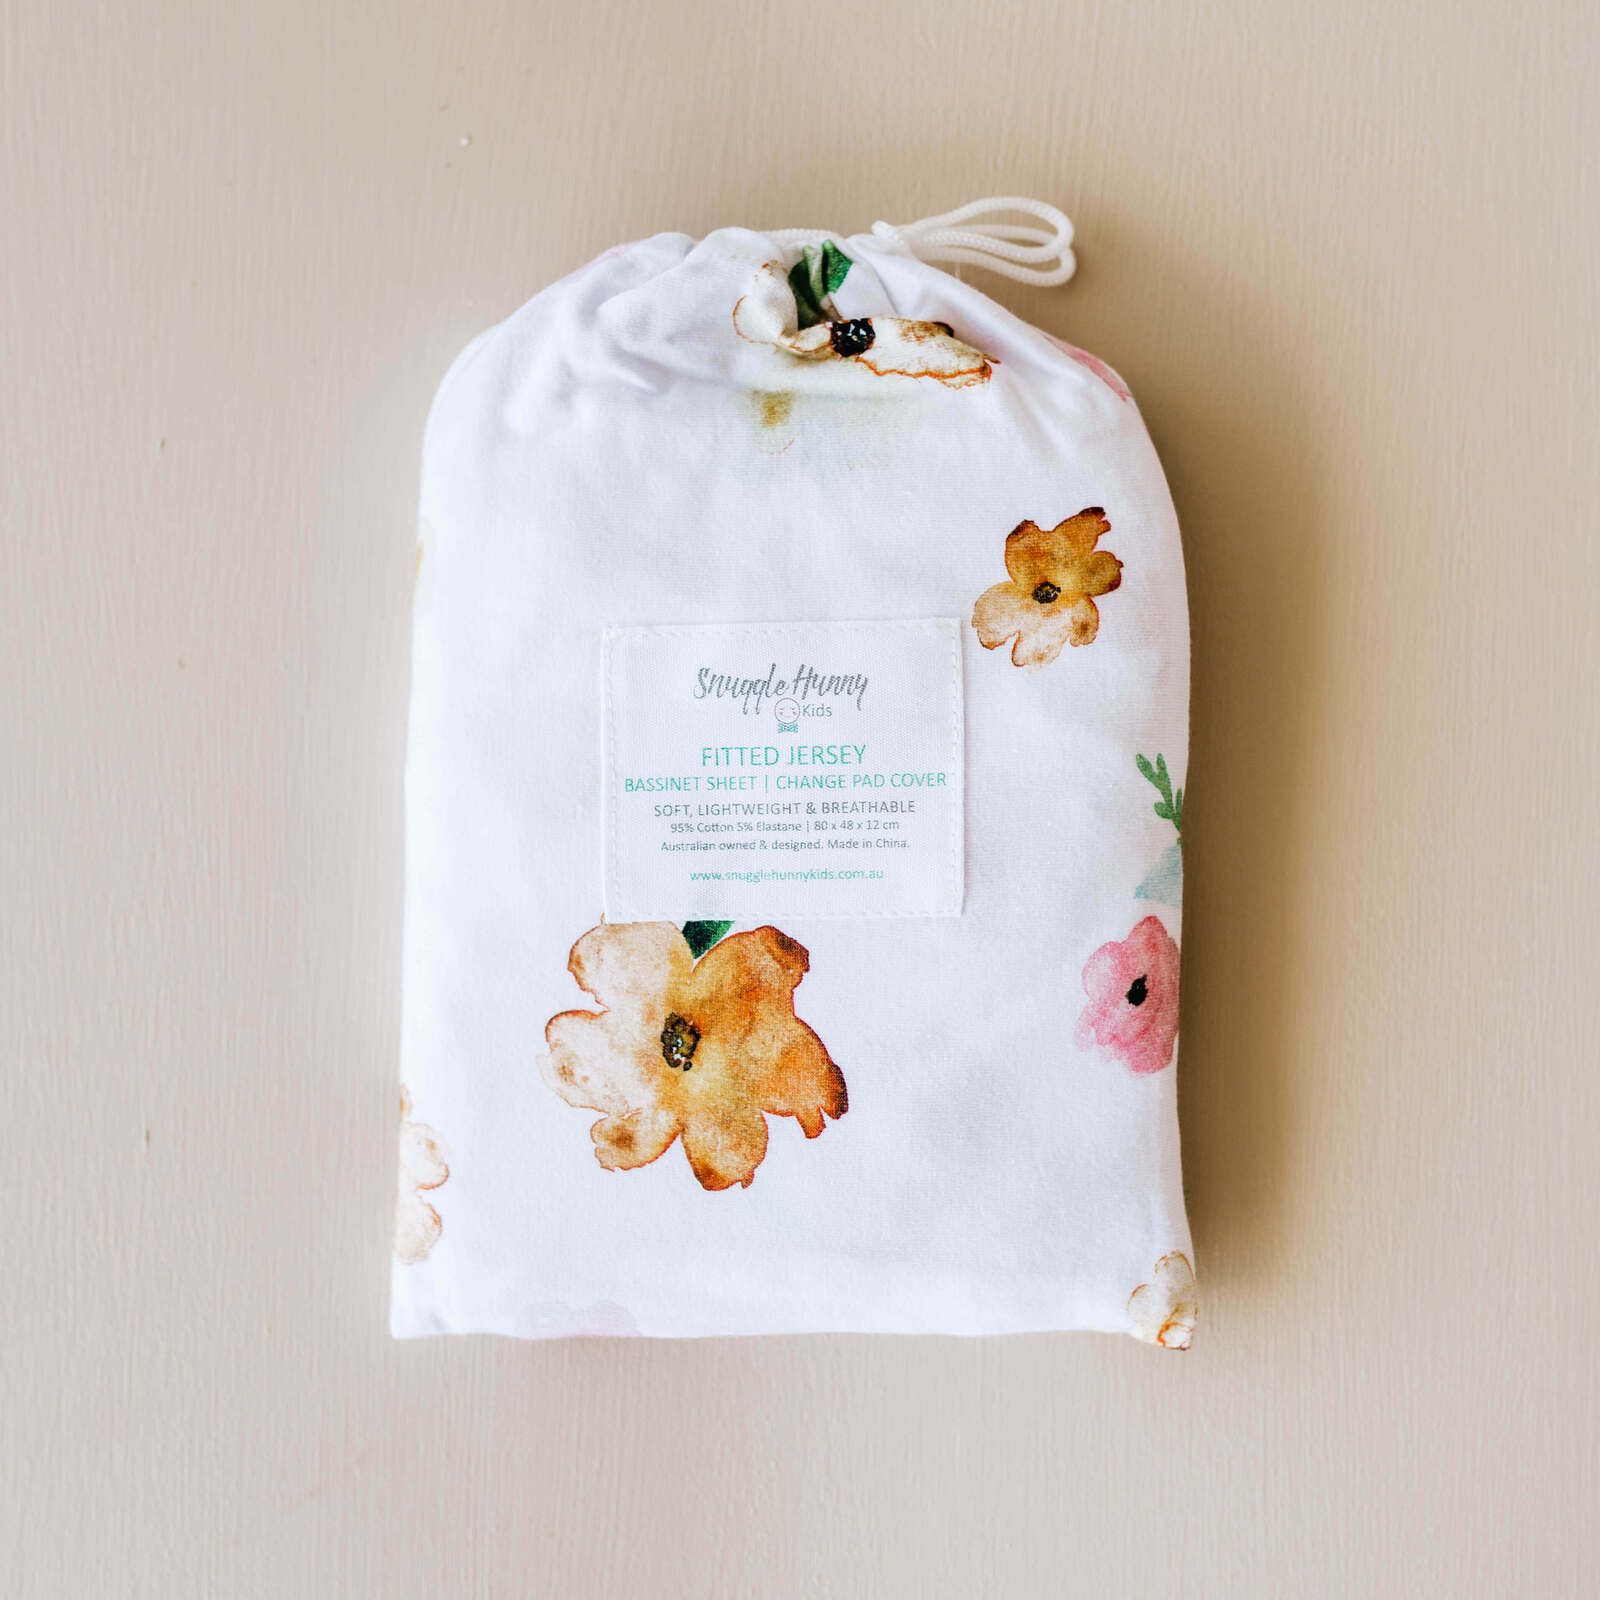 Poppy | Bassinet Sheet / Change Pad Cover